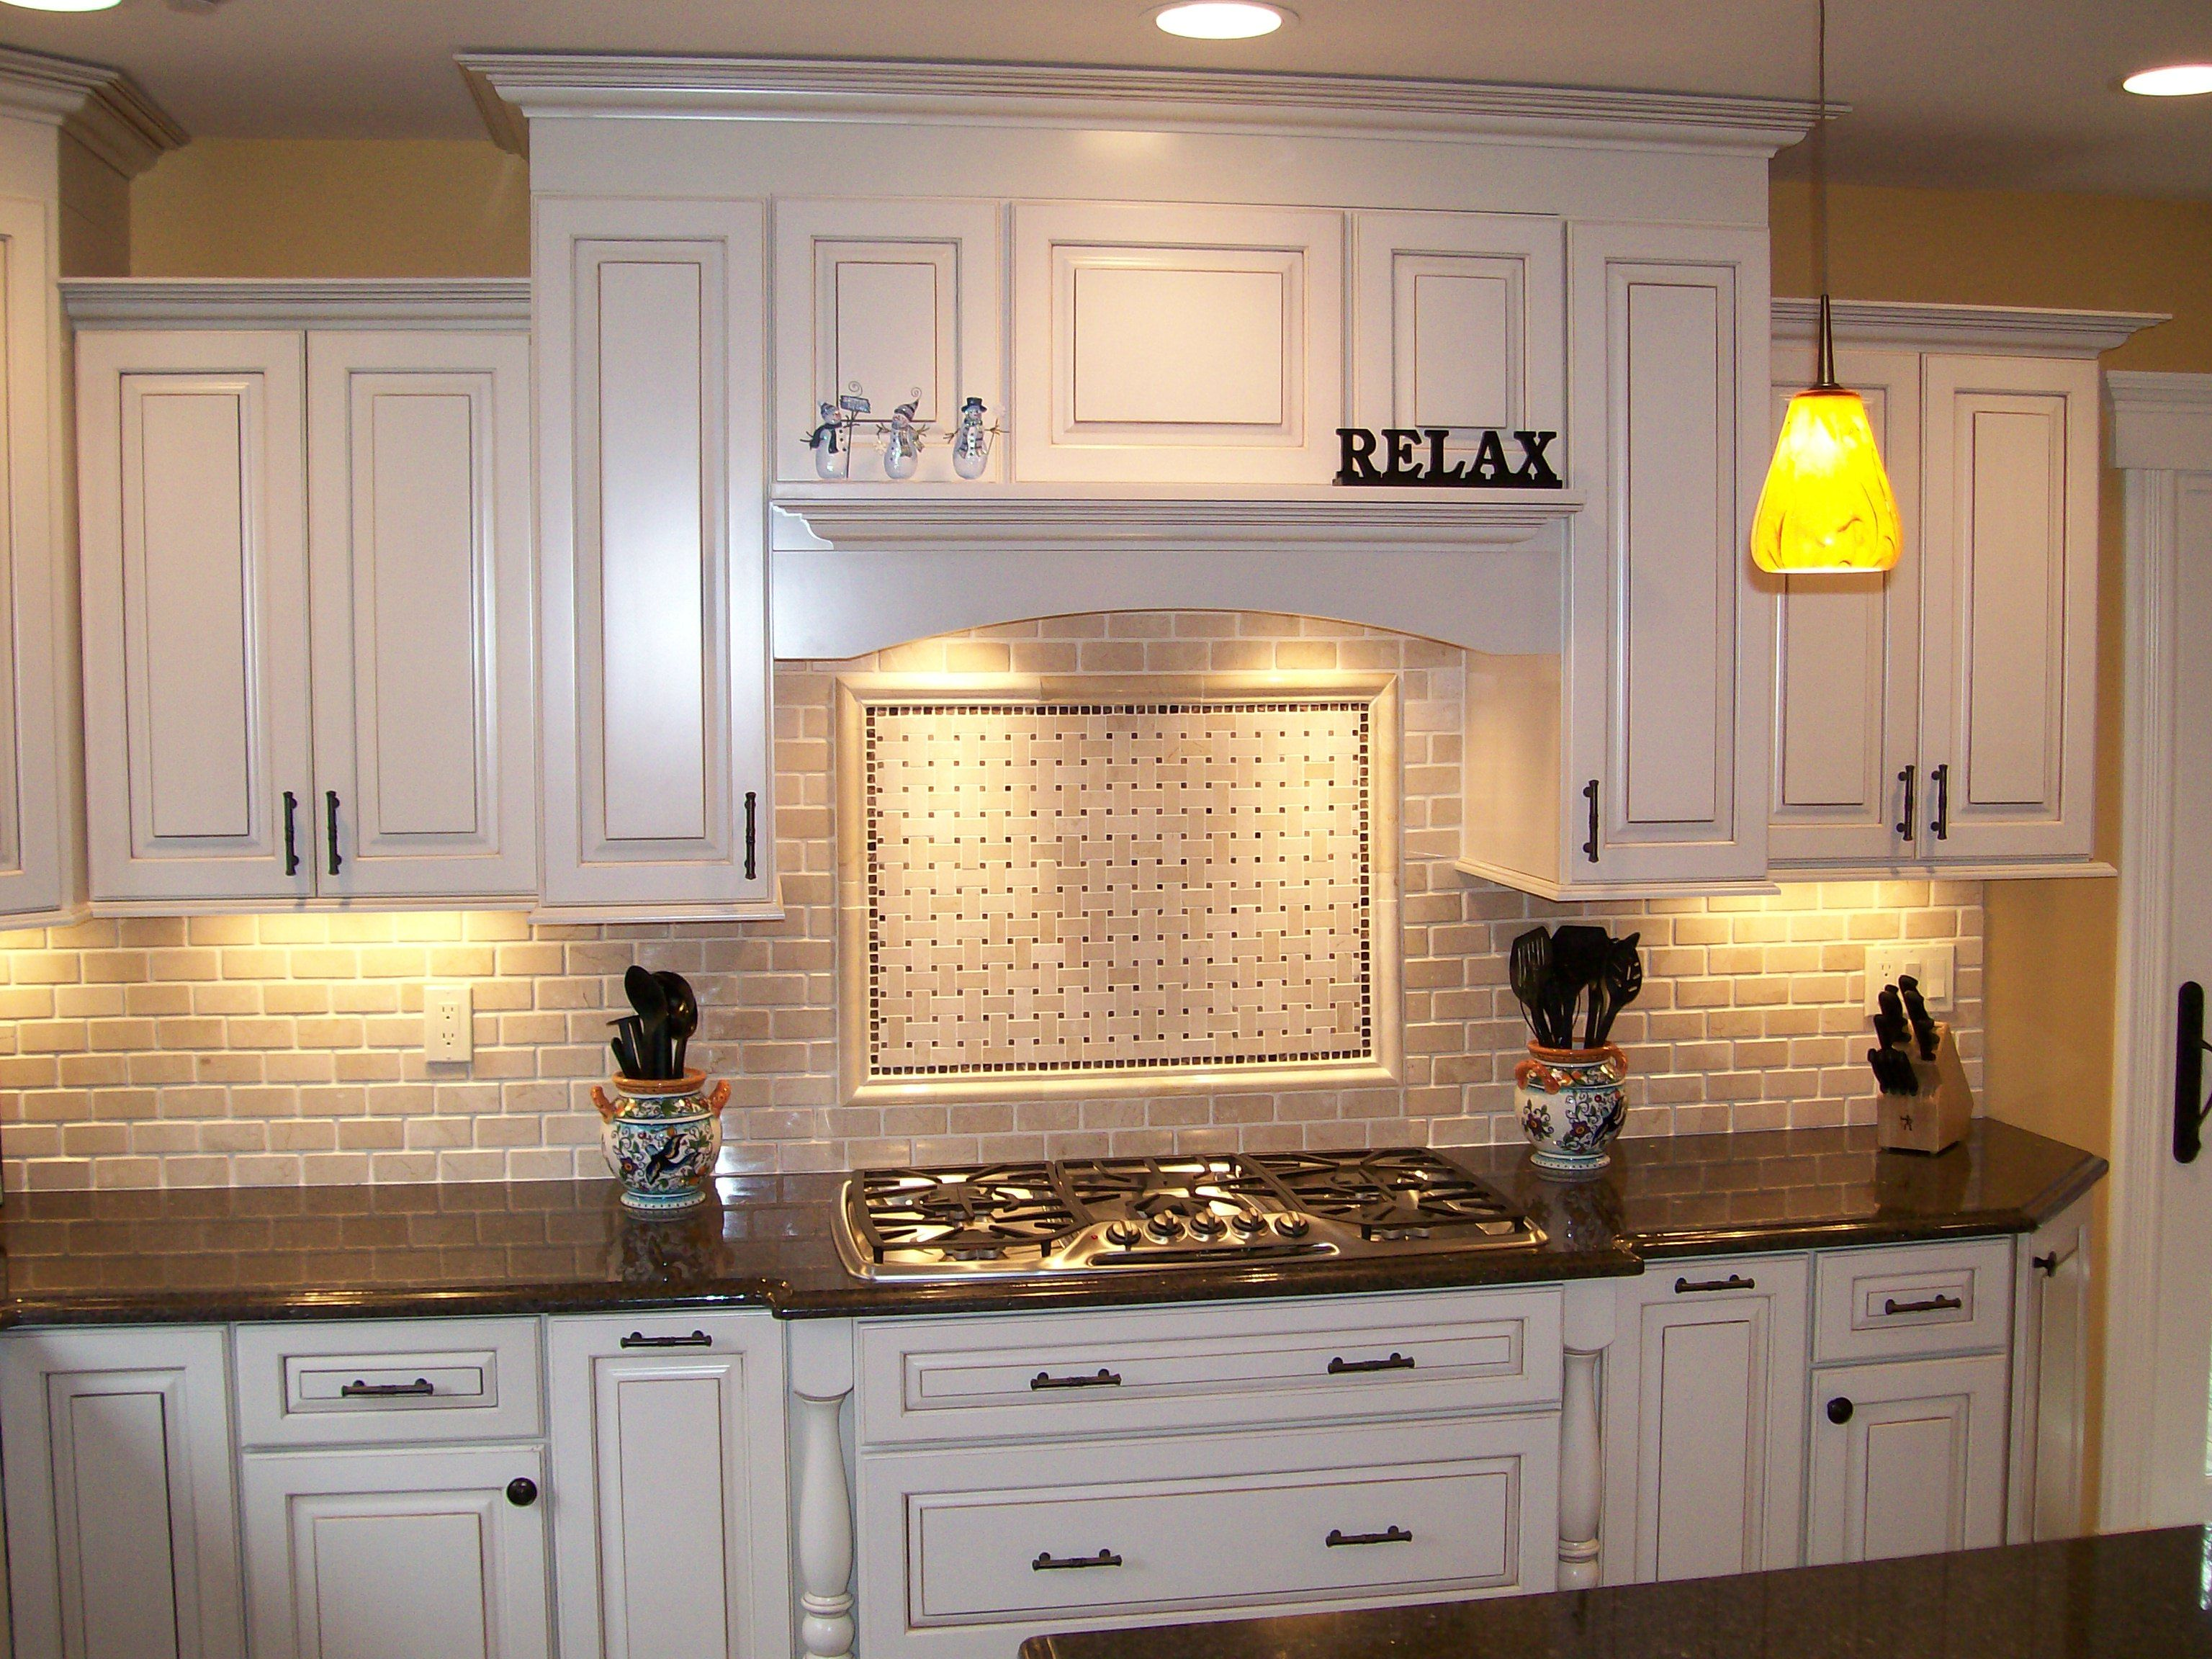 White Kitchen Backsplash Ideas kitchen, nice brick backsplash in kitchen with white cabinet and